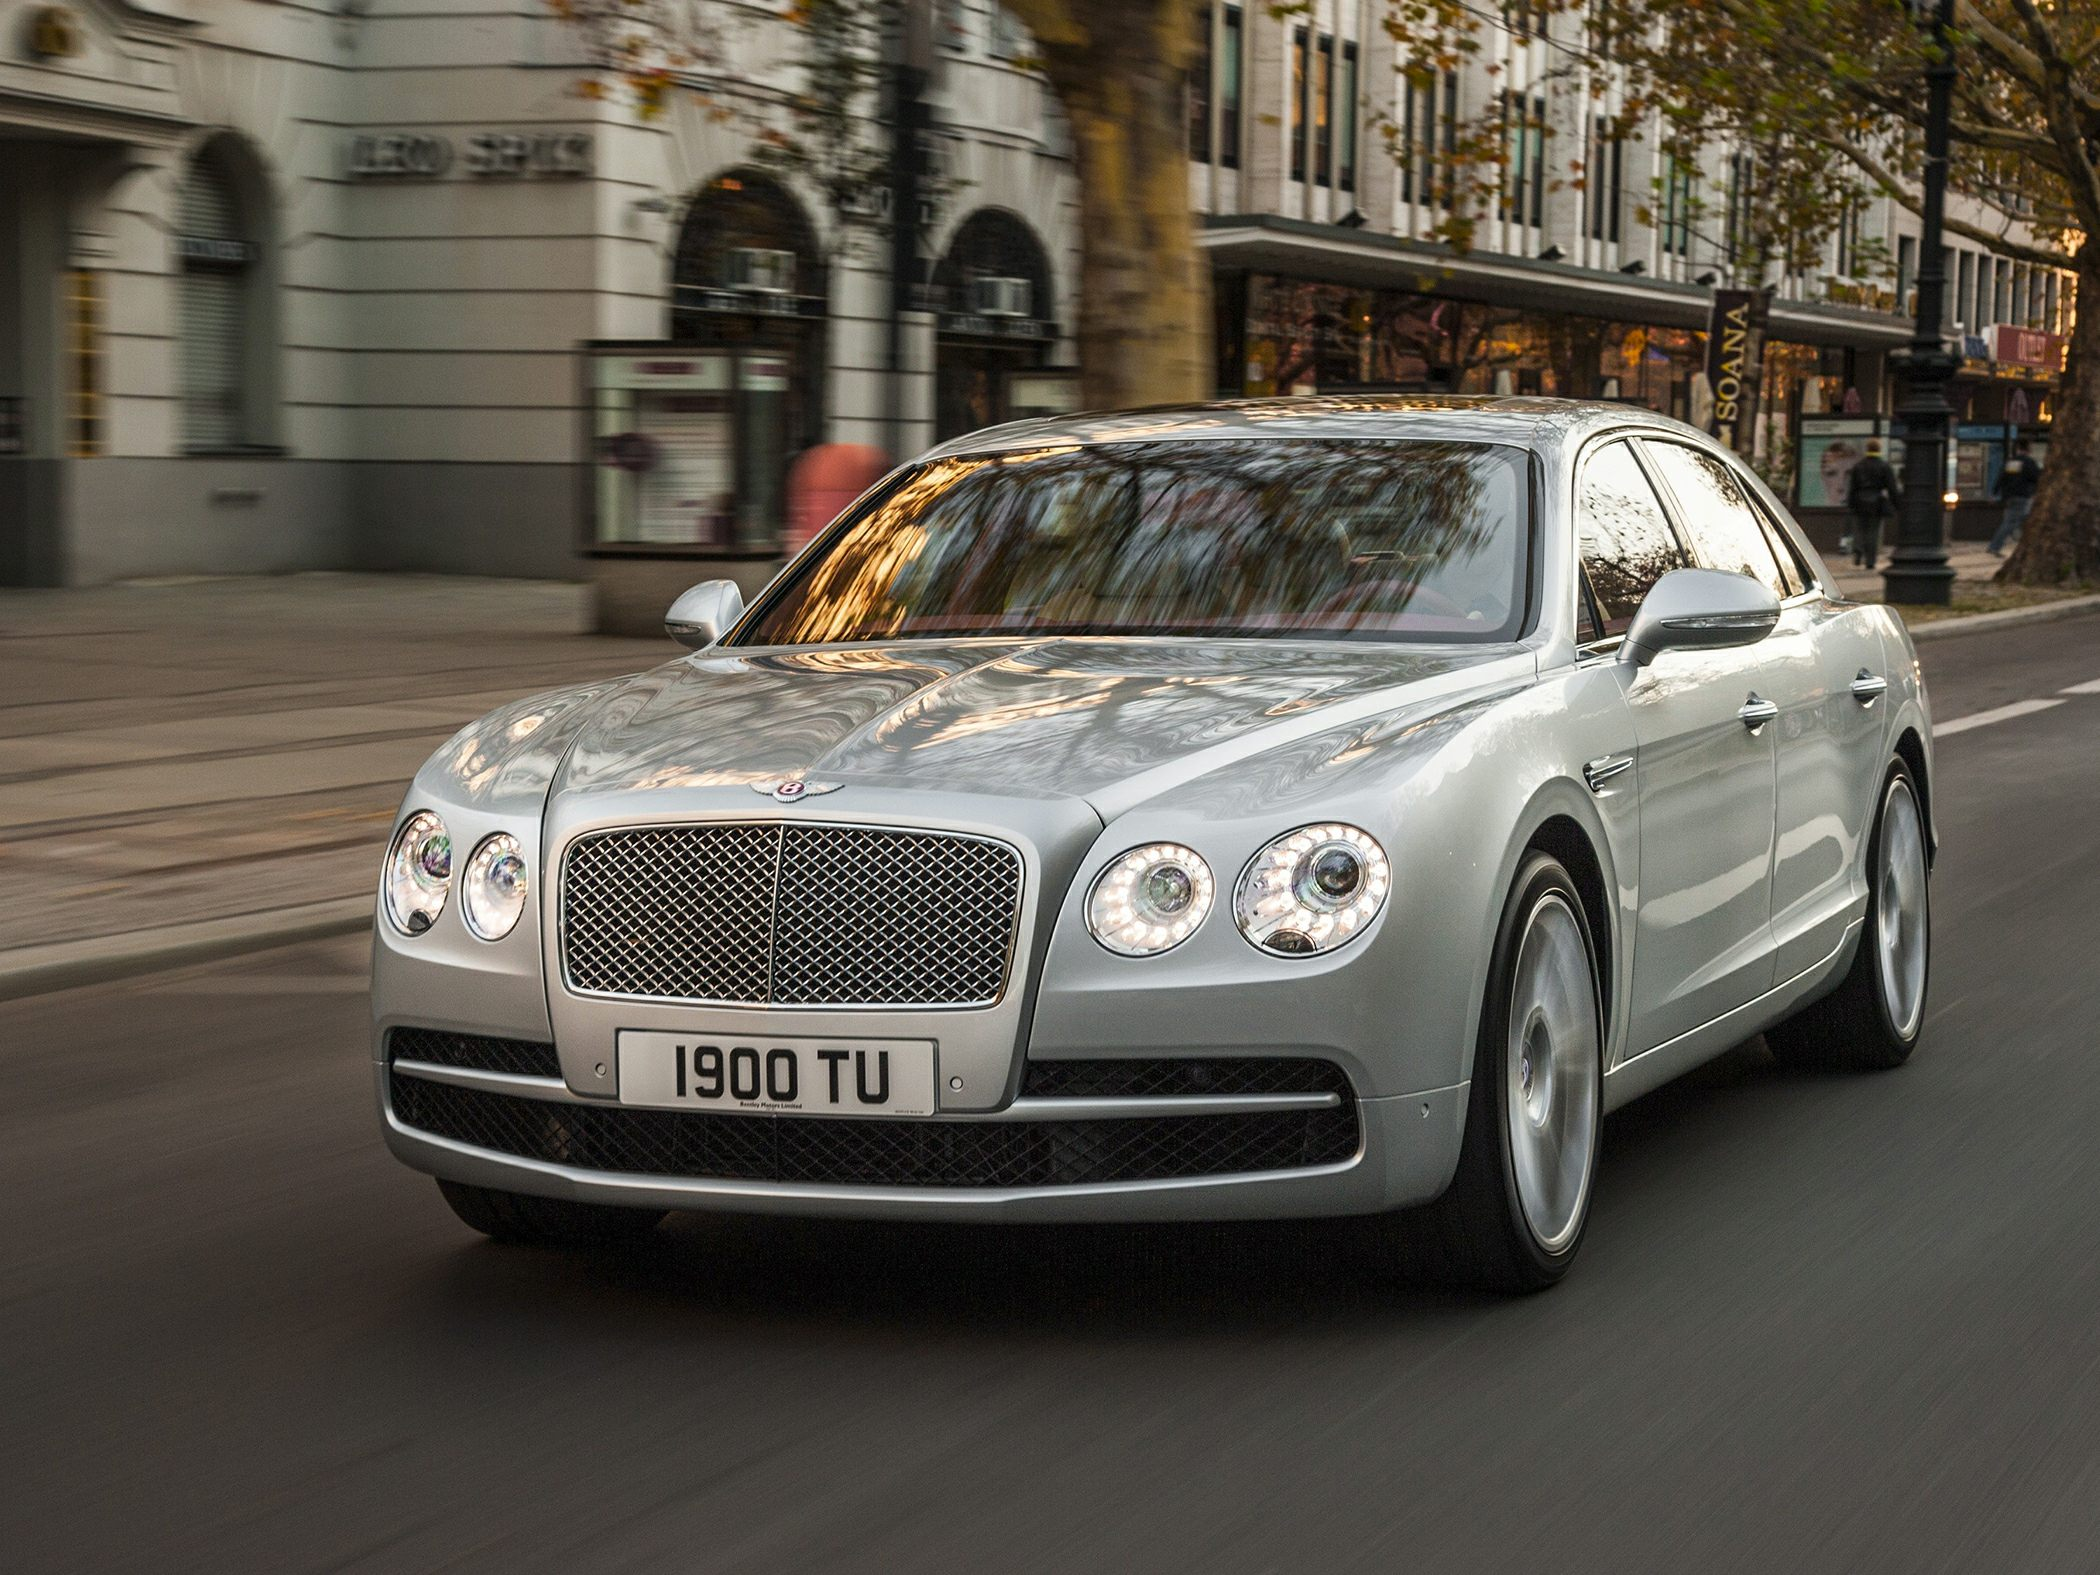 2017 Bentley Flying Spur W12 S Laughs At The 200-mph